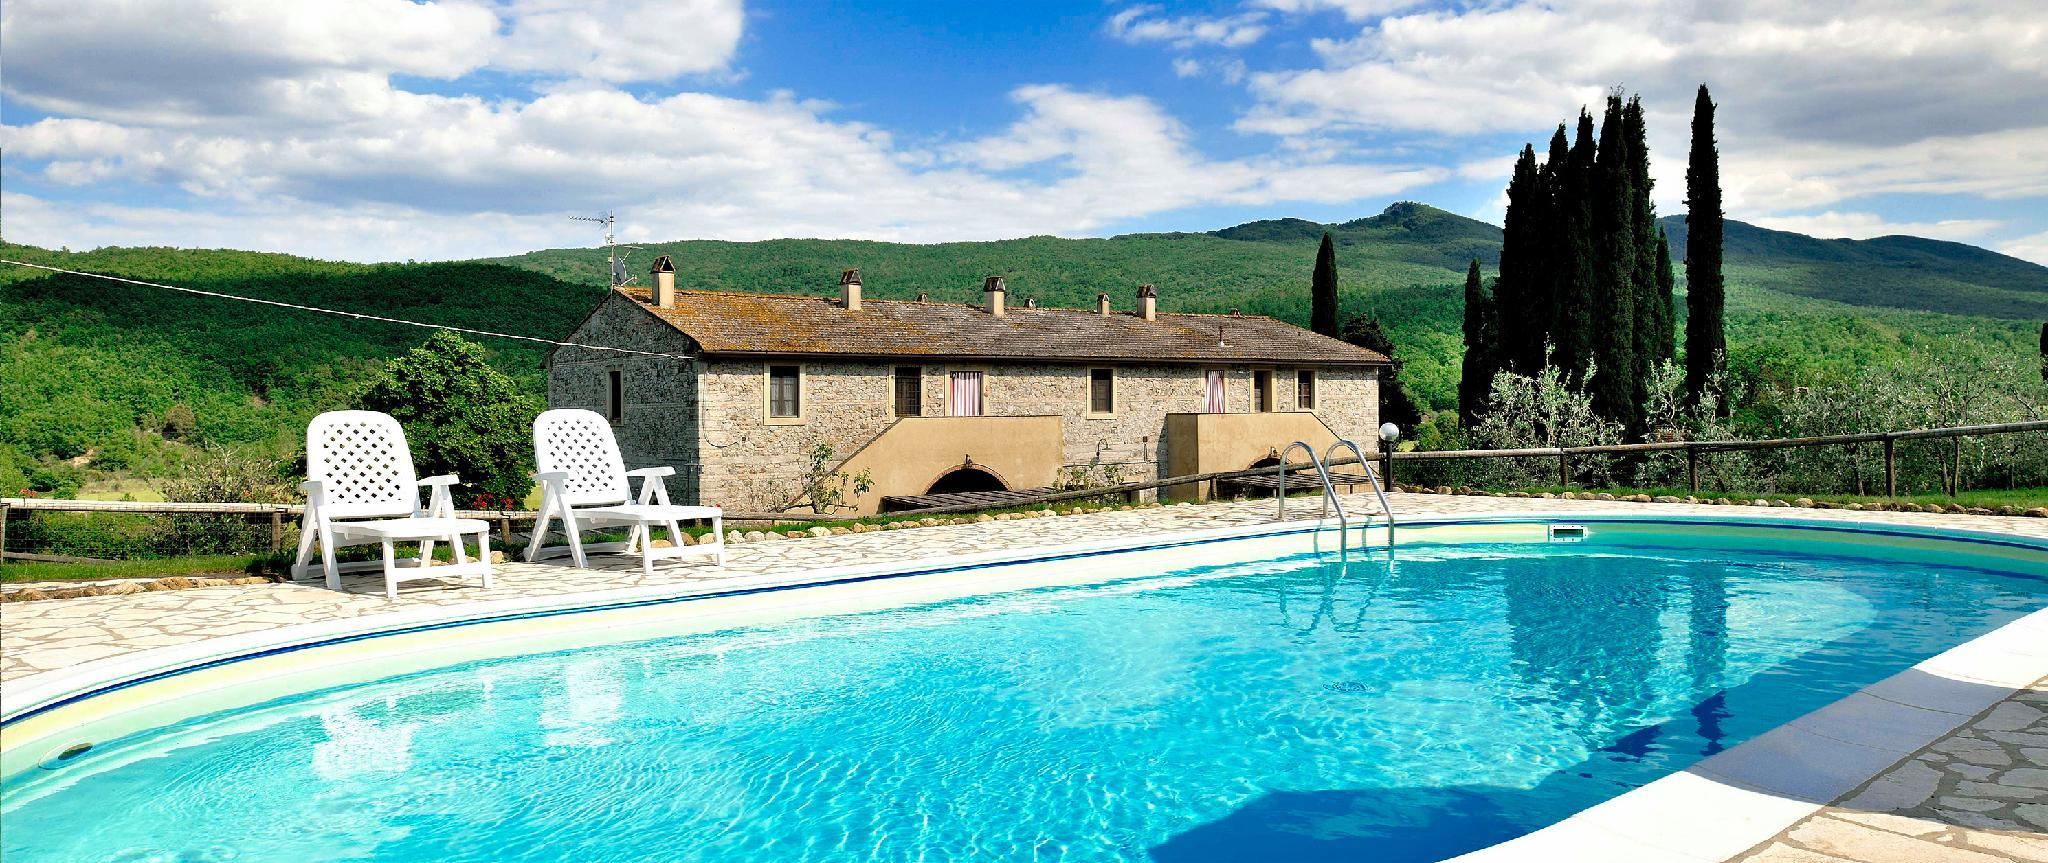 Farmhouse Apartment In Tuscany Suitable For 4